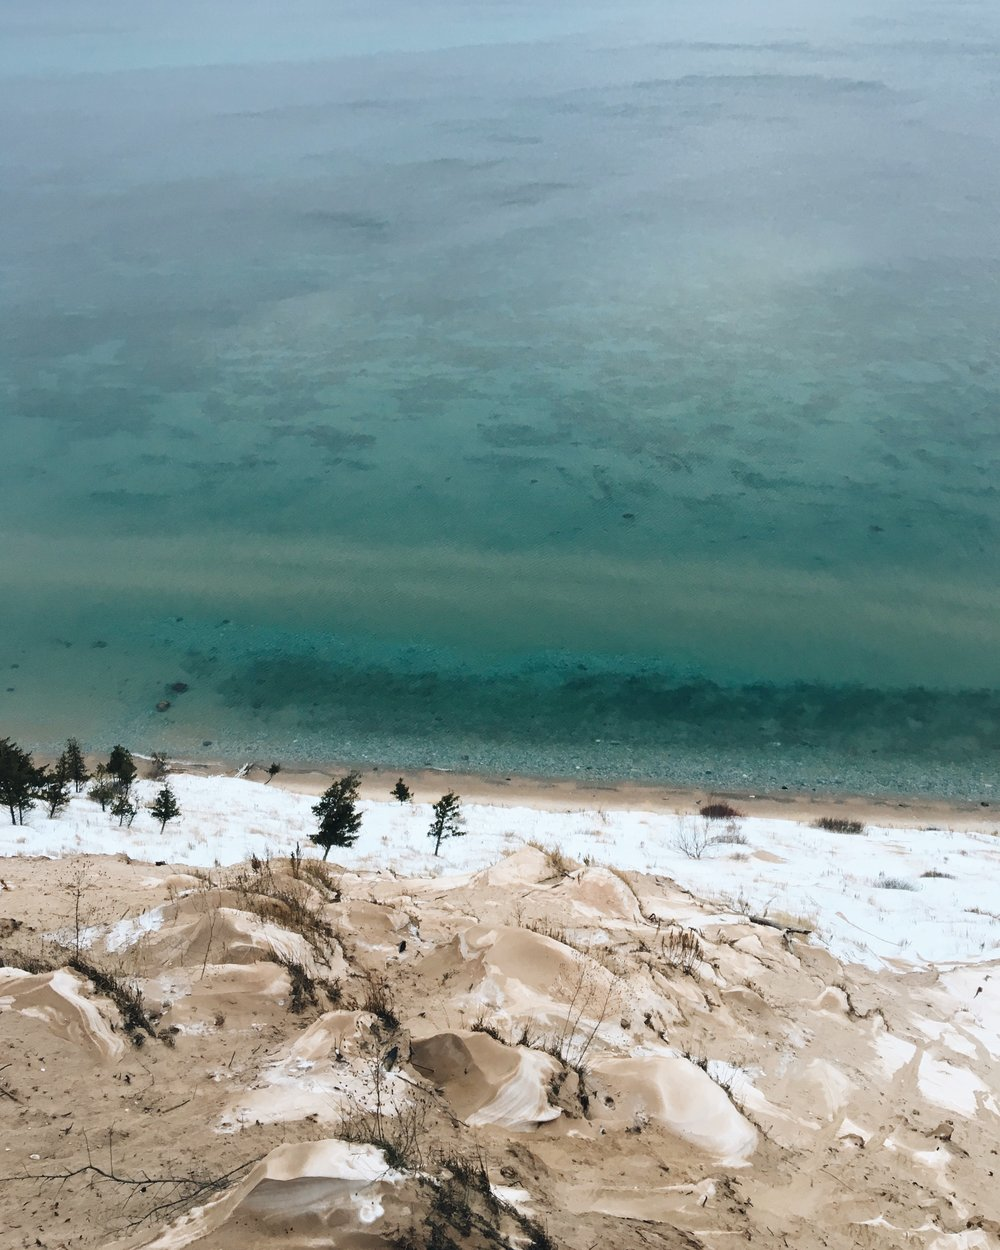 Overlooking Lake Michigan from a bluff in winter